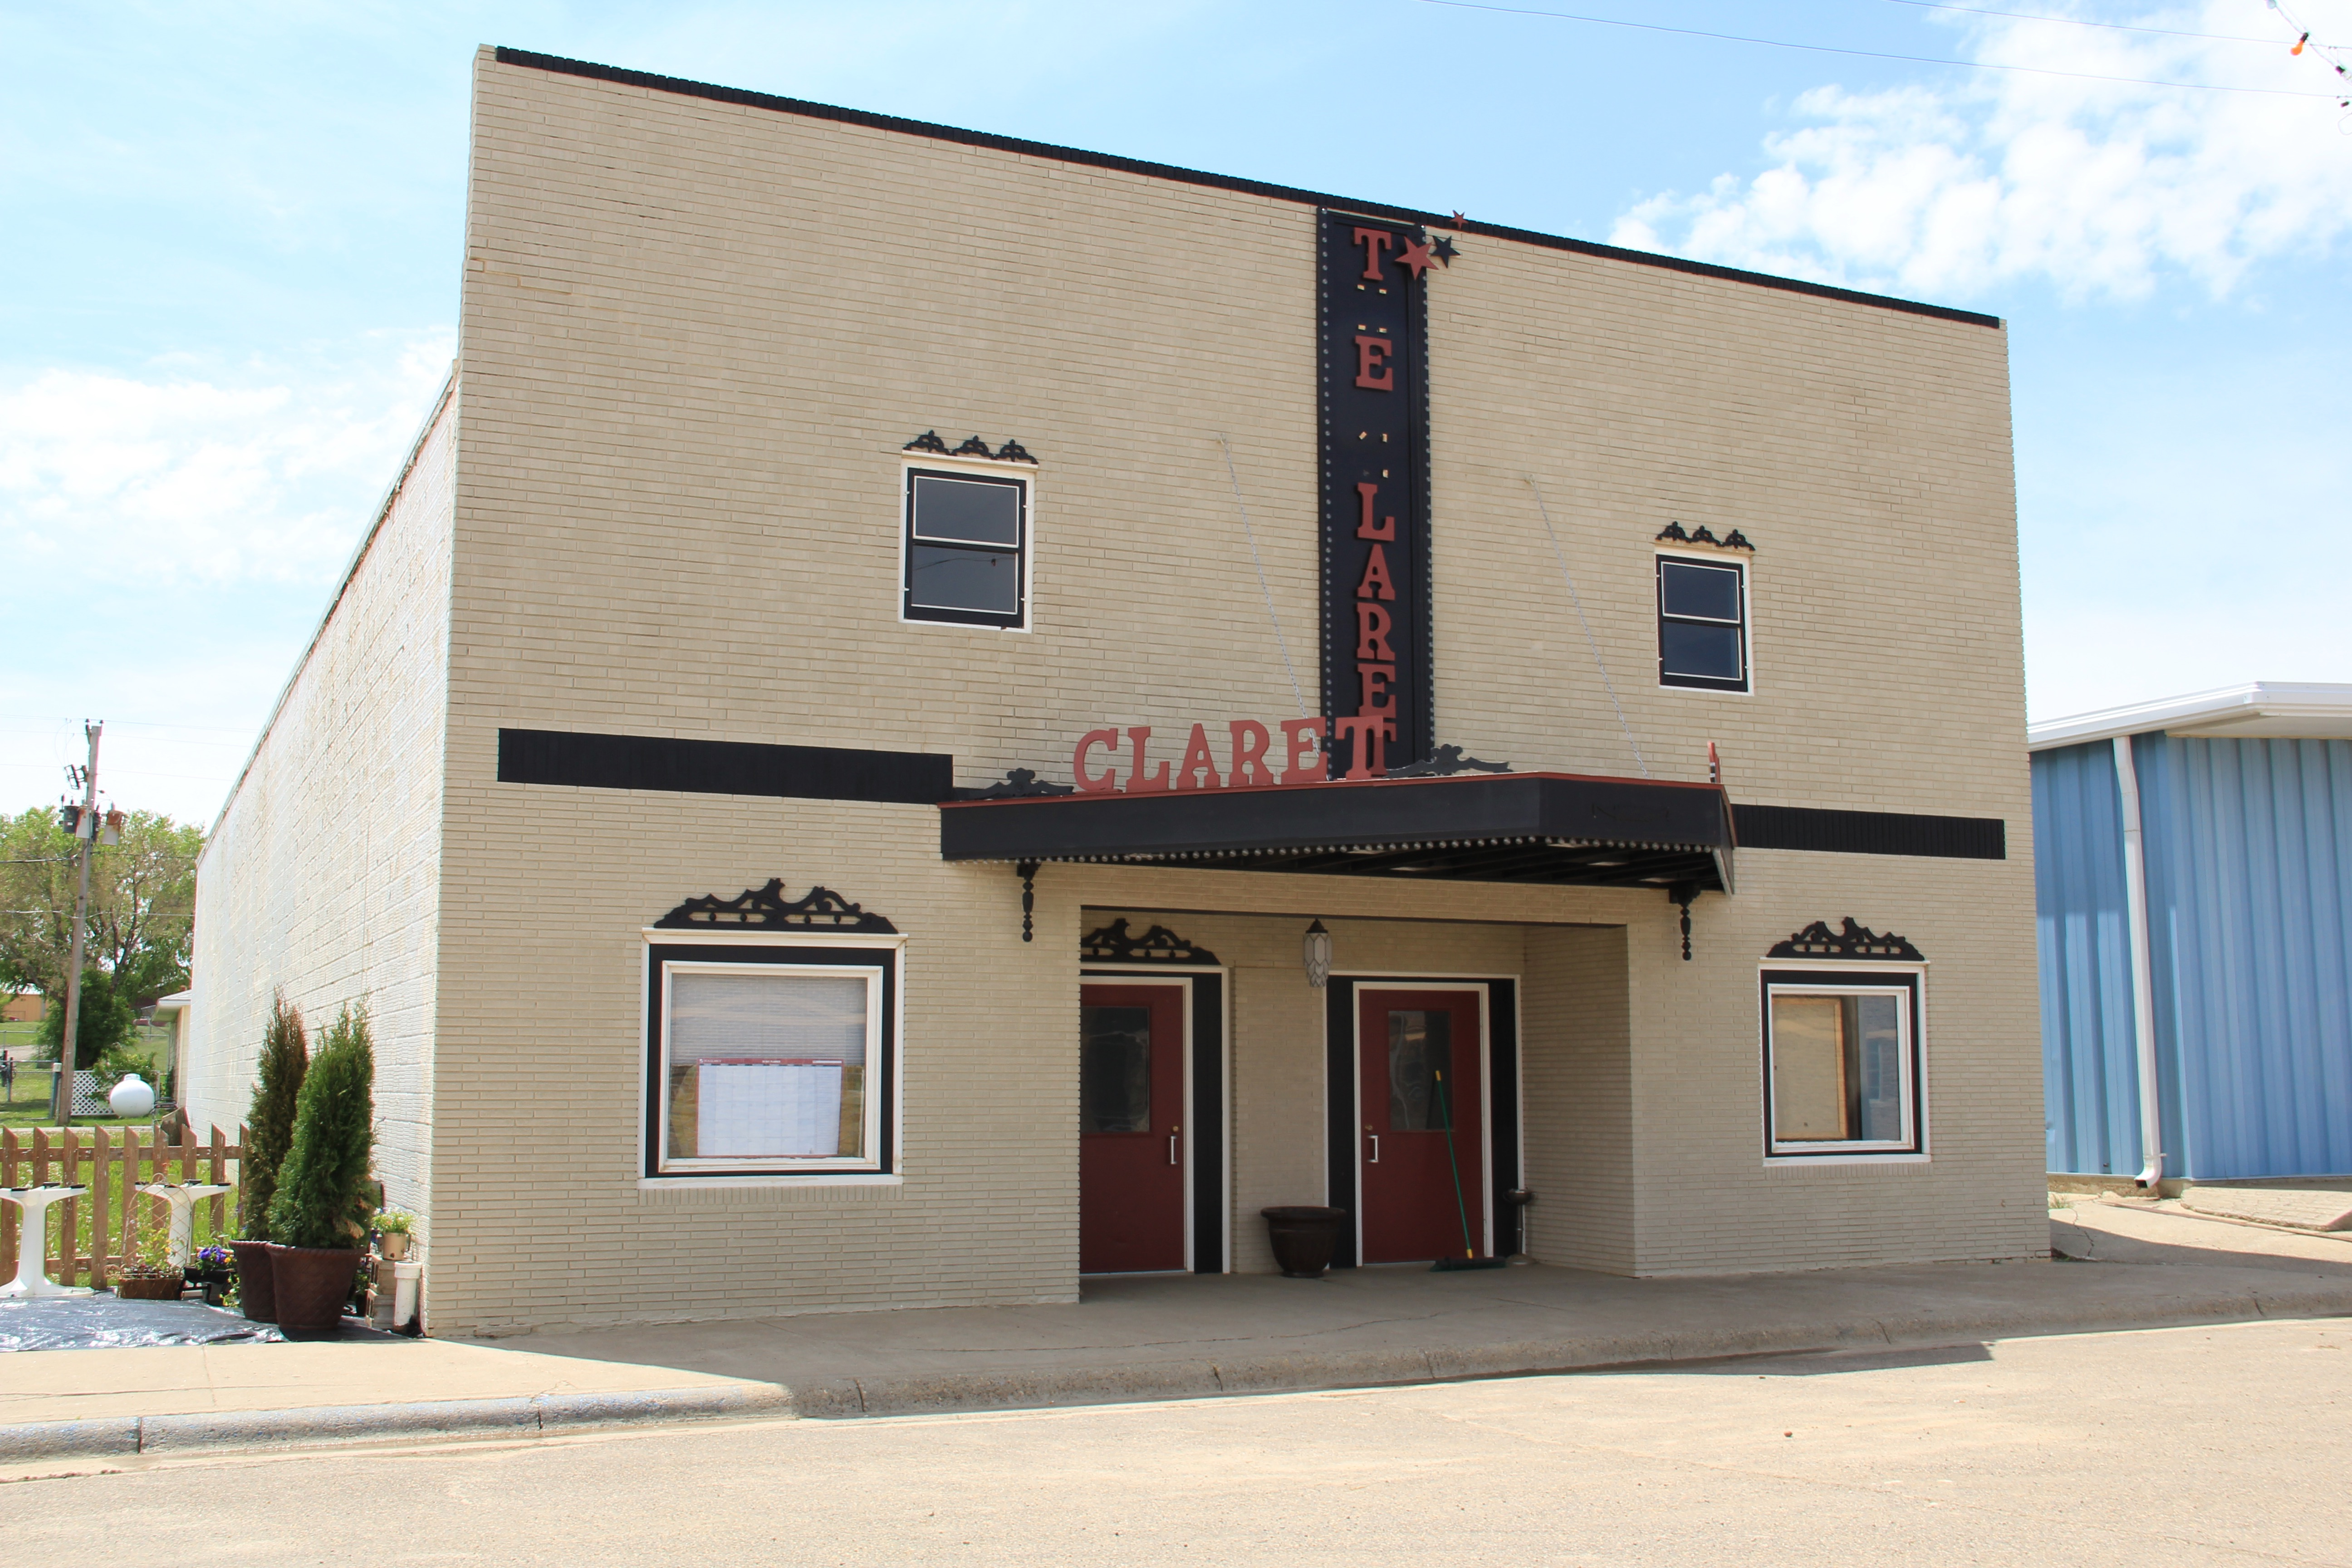 McCone Co Circle theater